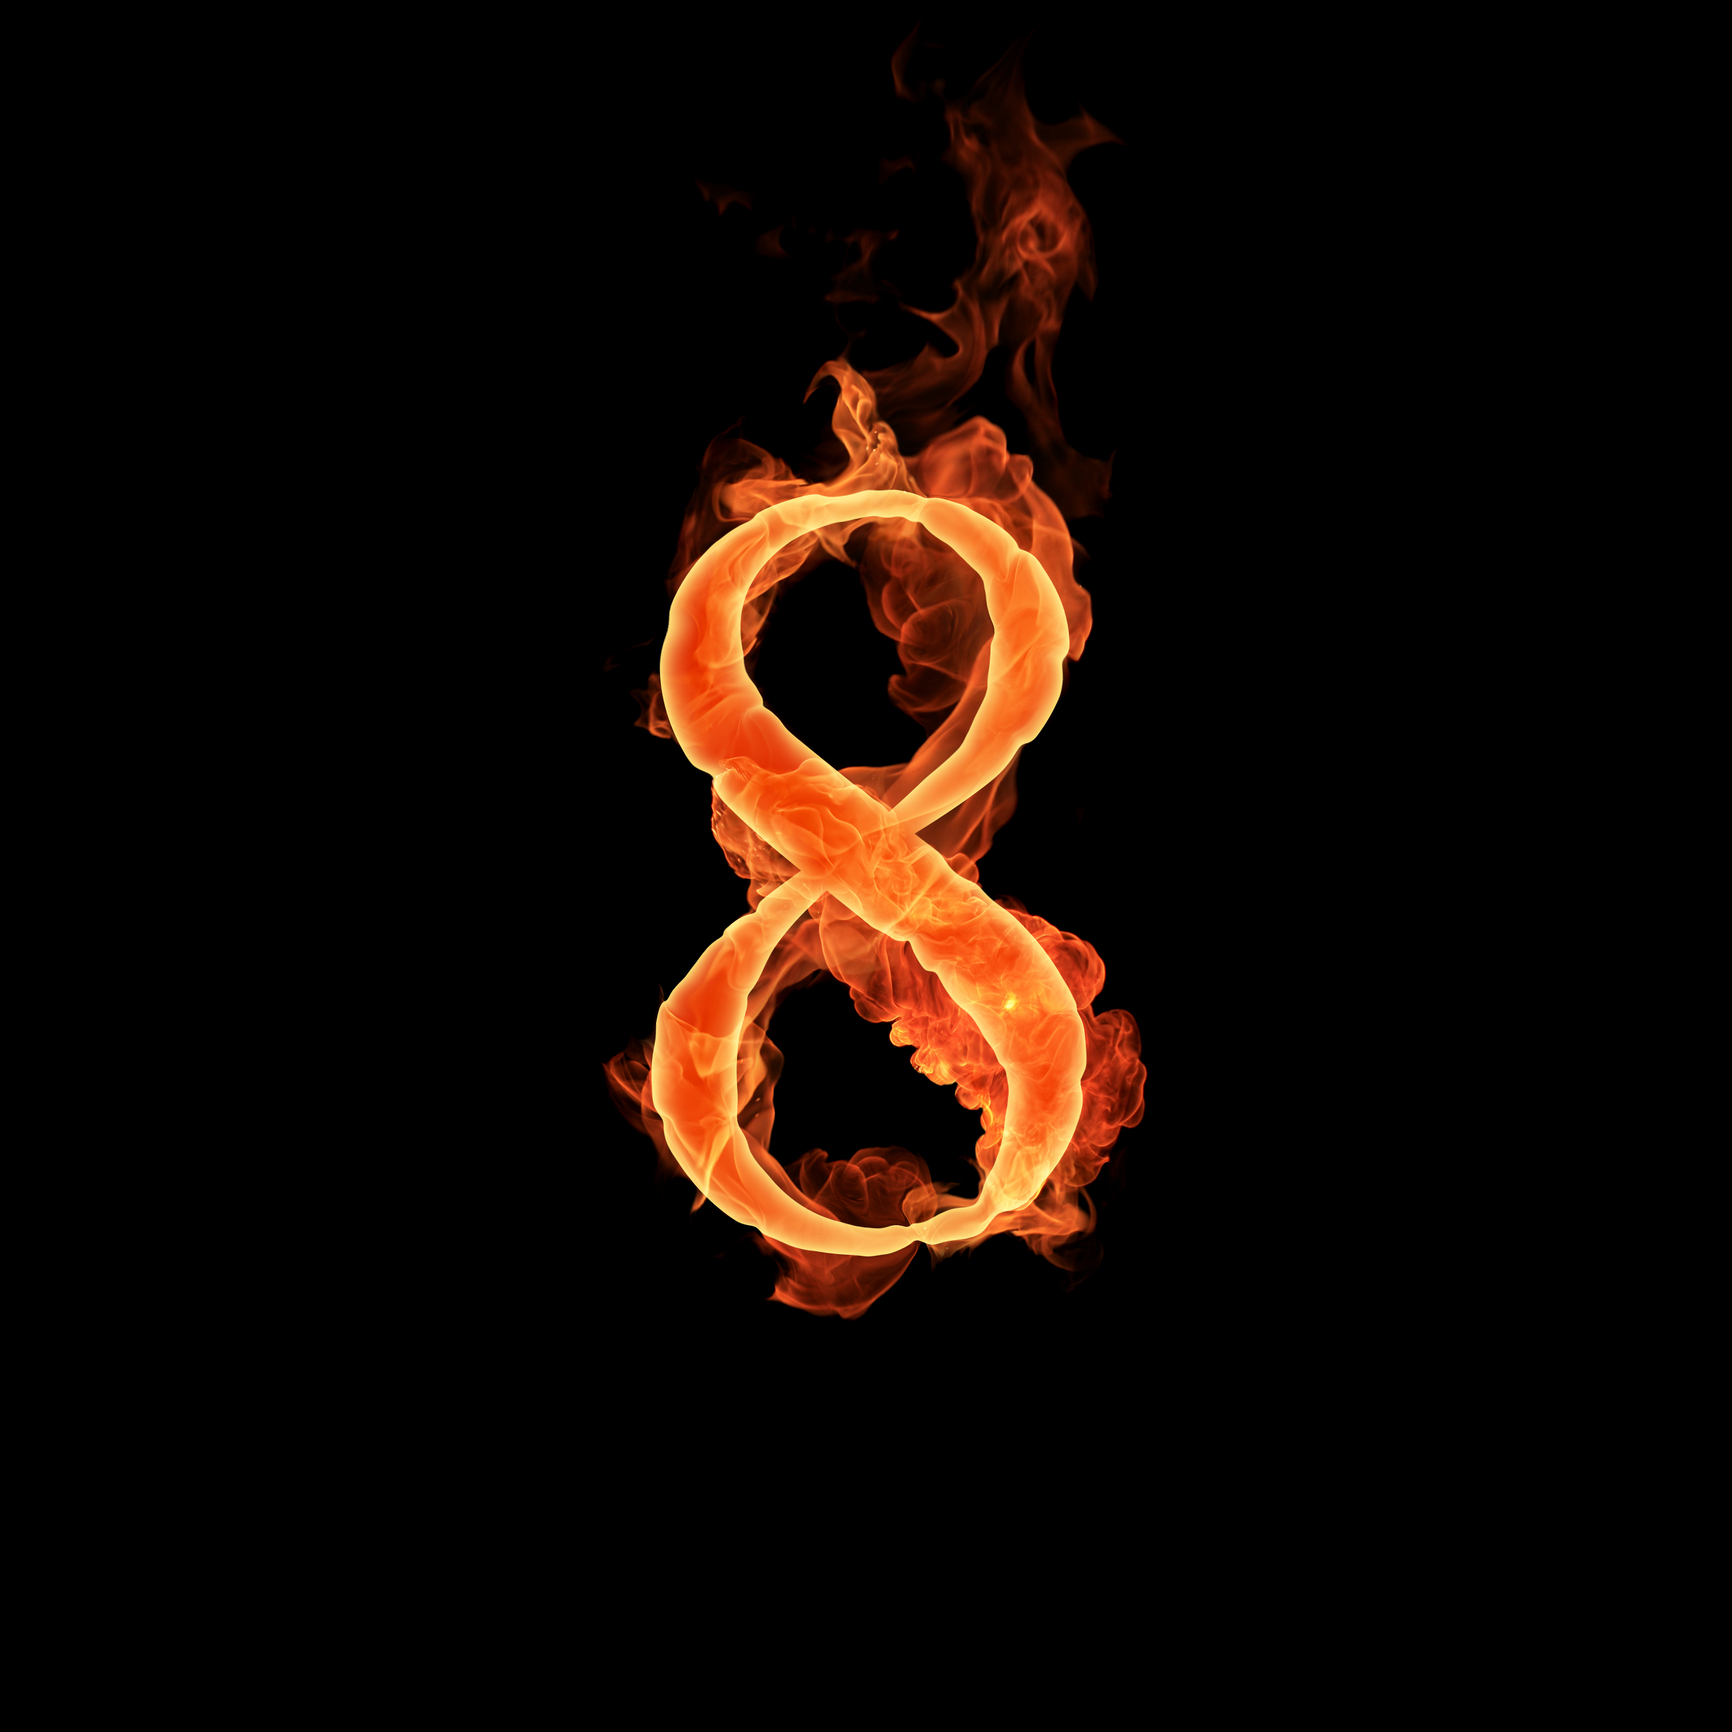 numbers images the number 8 hd wallpaper and background